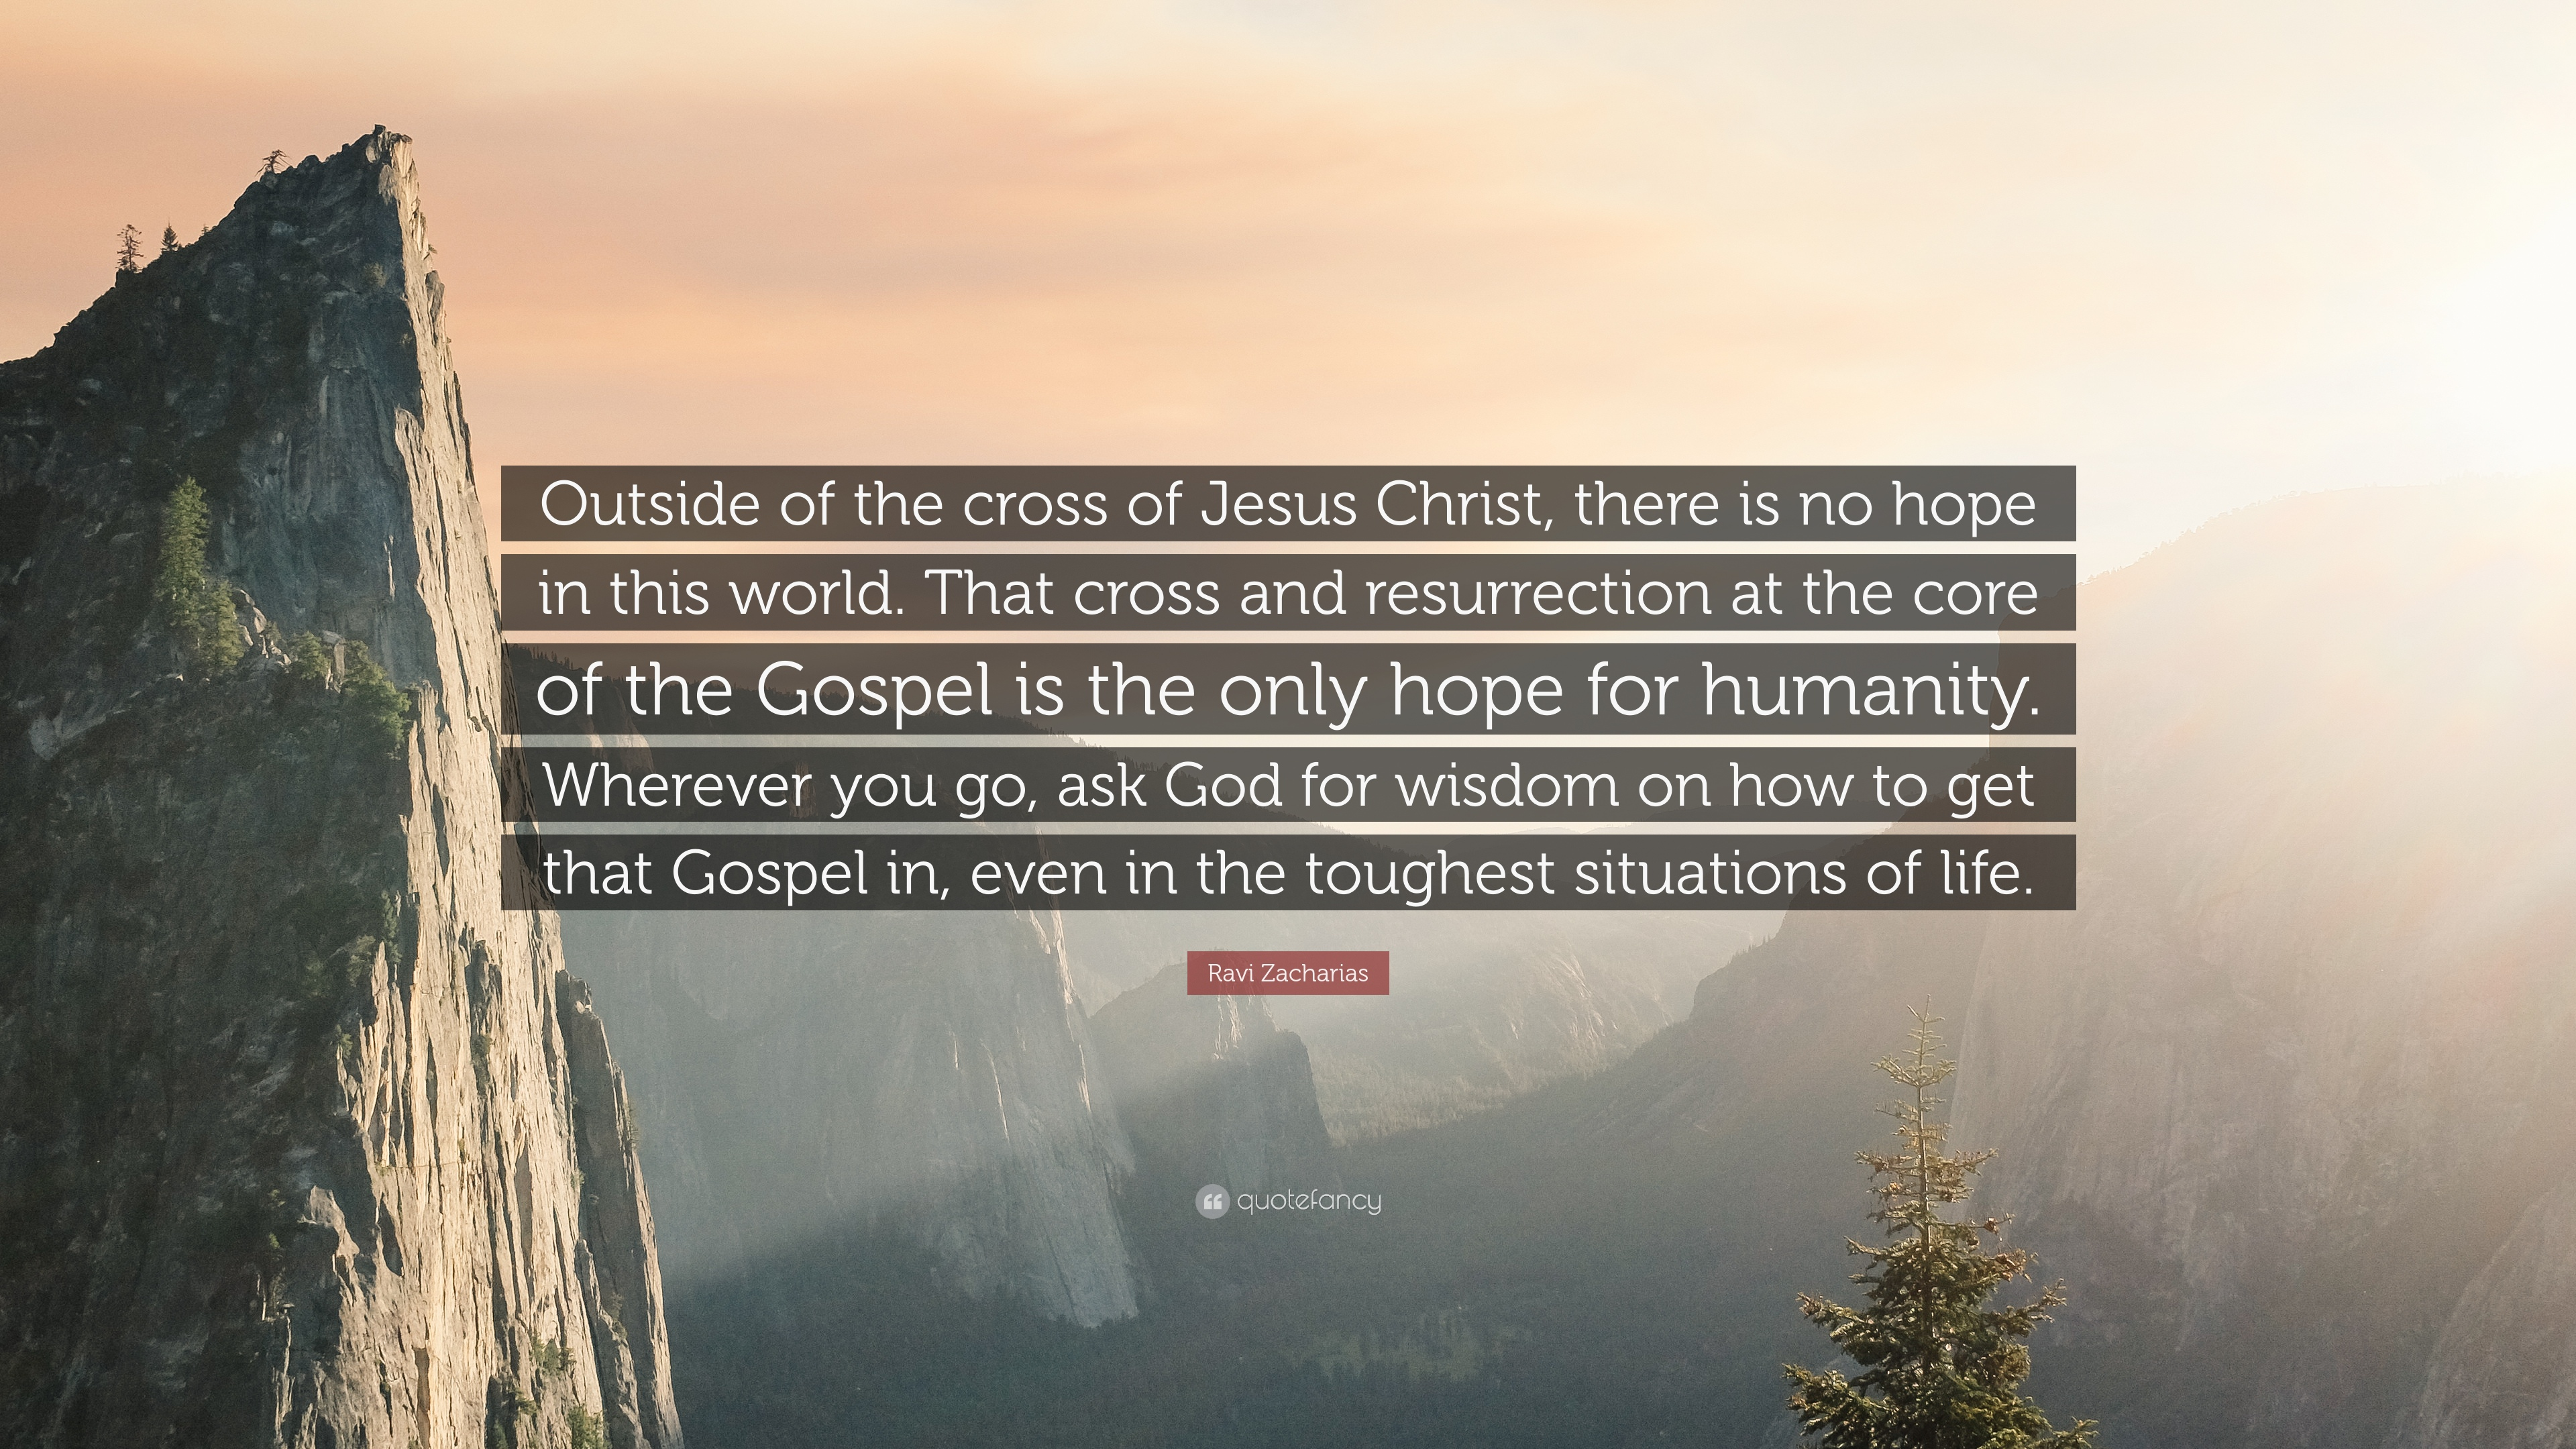 ravi zacharias quote u201coutside of the cross of jesus christ there